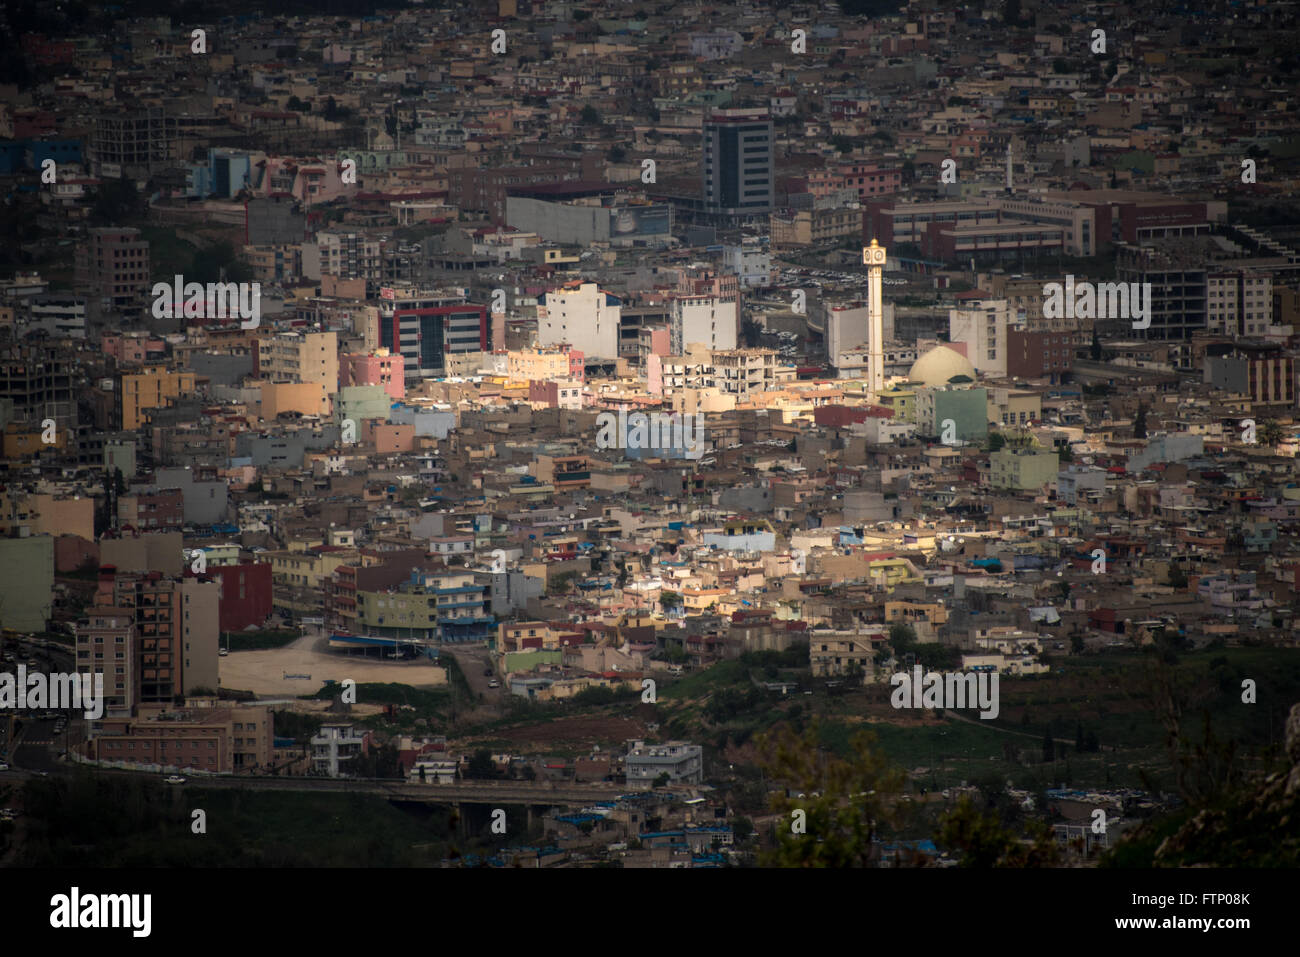 Aerial view of Dohuk, Iraq, Kurdistan - Stock Image